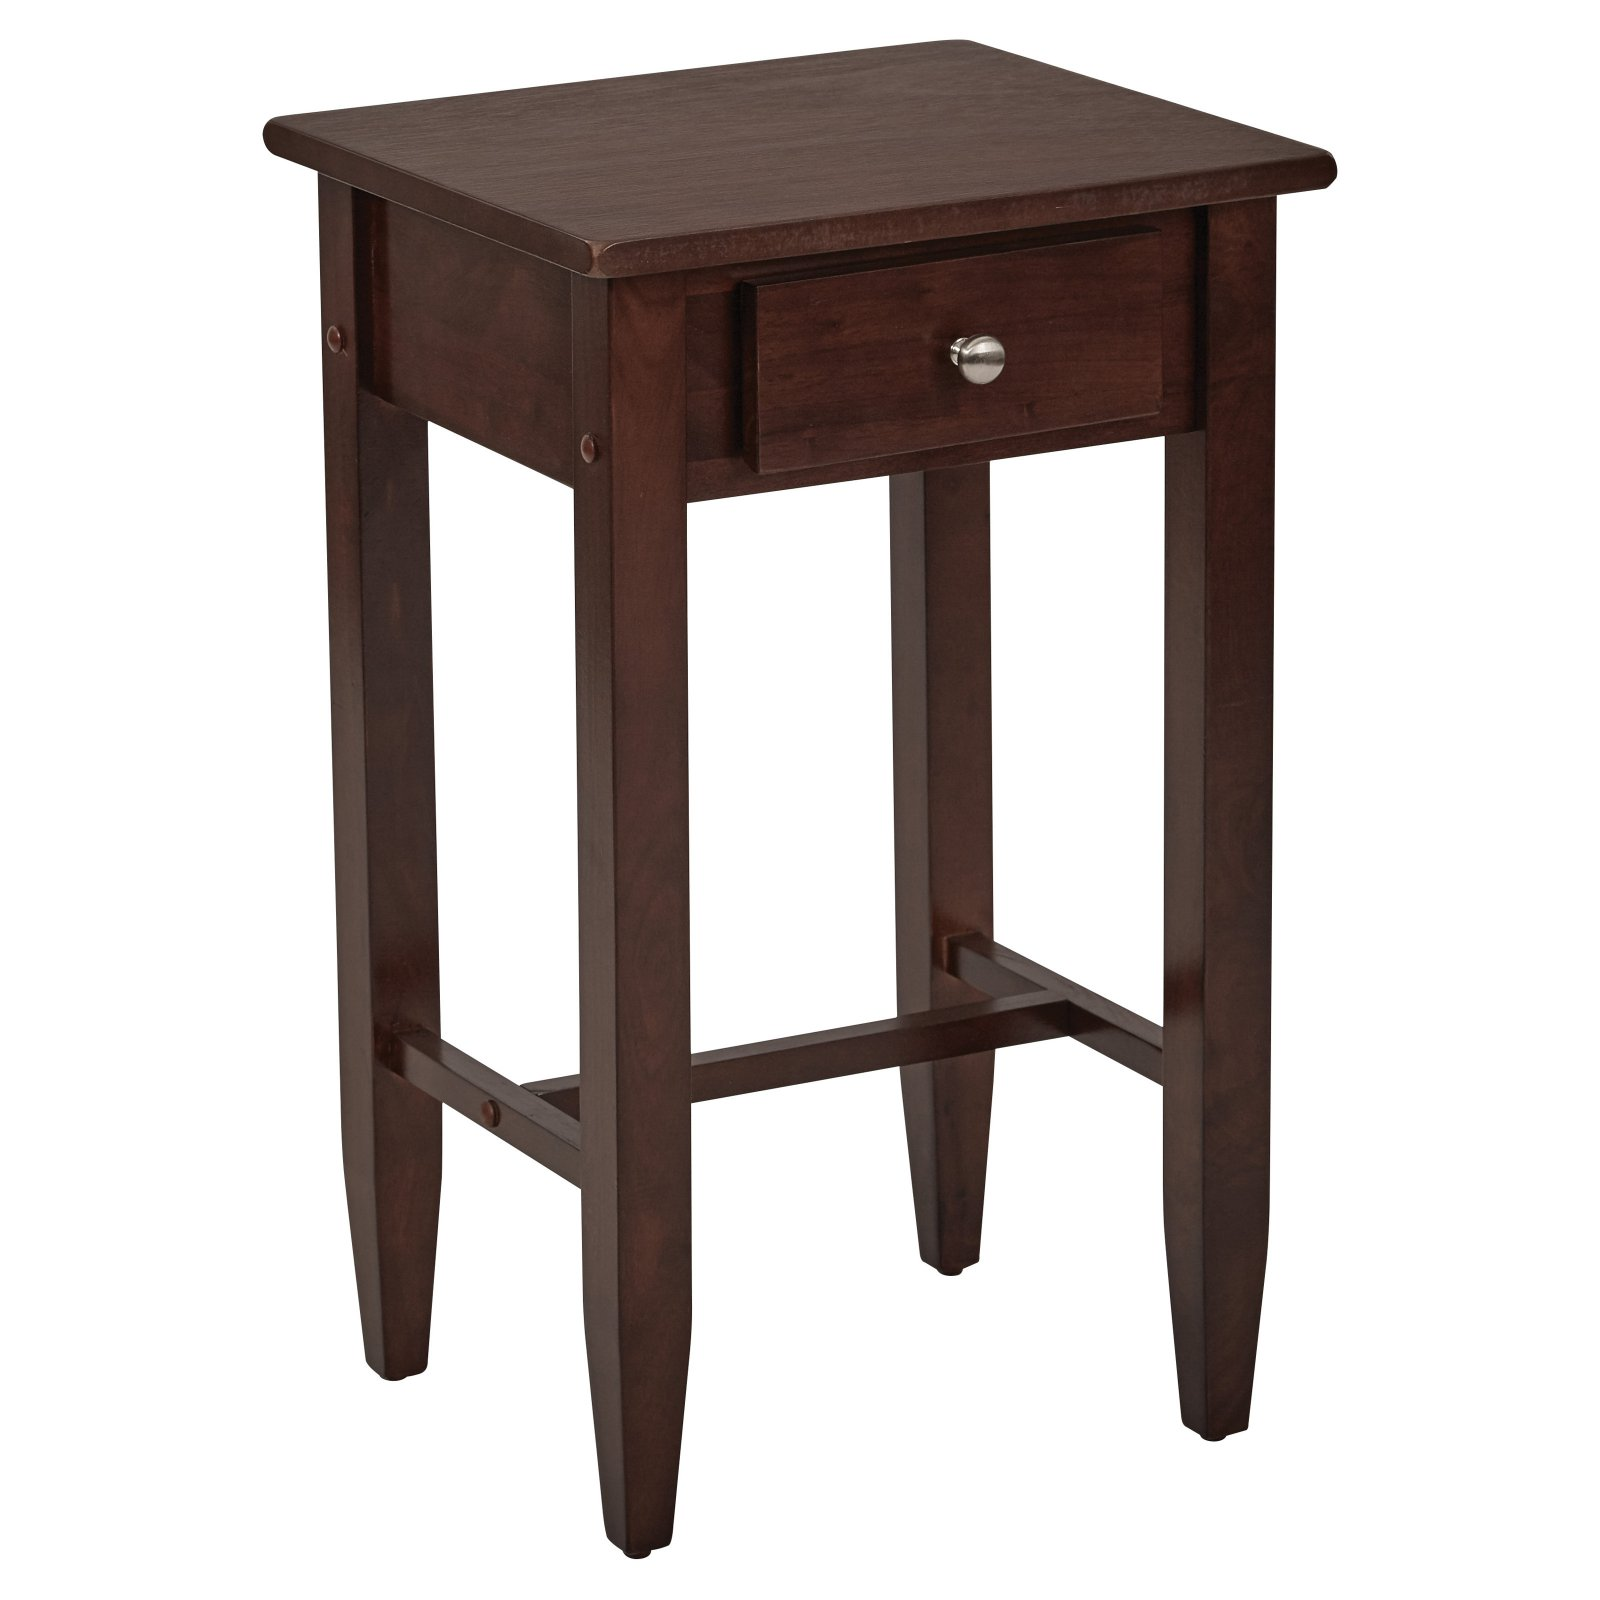 tall side table espresso end details about ethan allen court king frame modern tables black corner component cabinet dark wood white nightstand elephant head coffee thin lamp